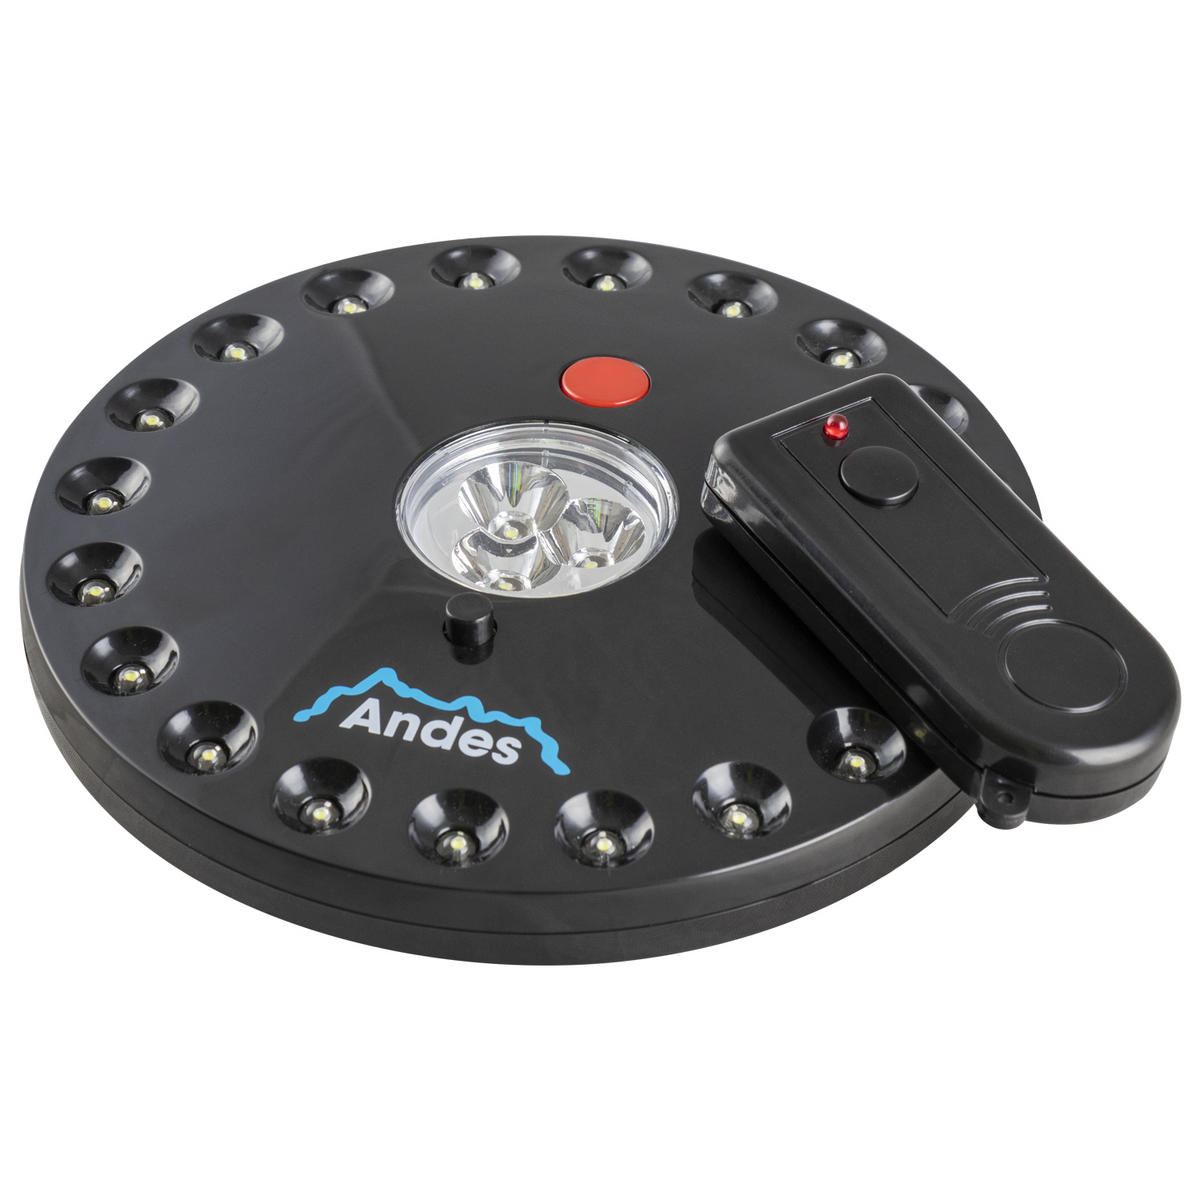 Andes LED Tent Light with Remote Control